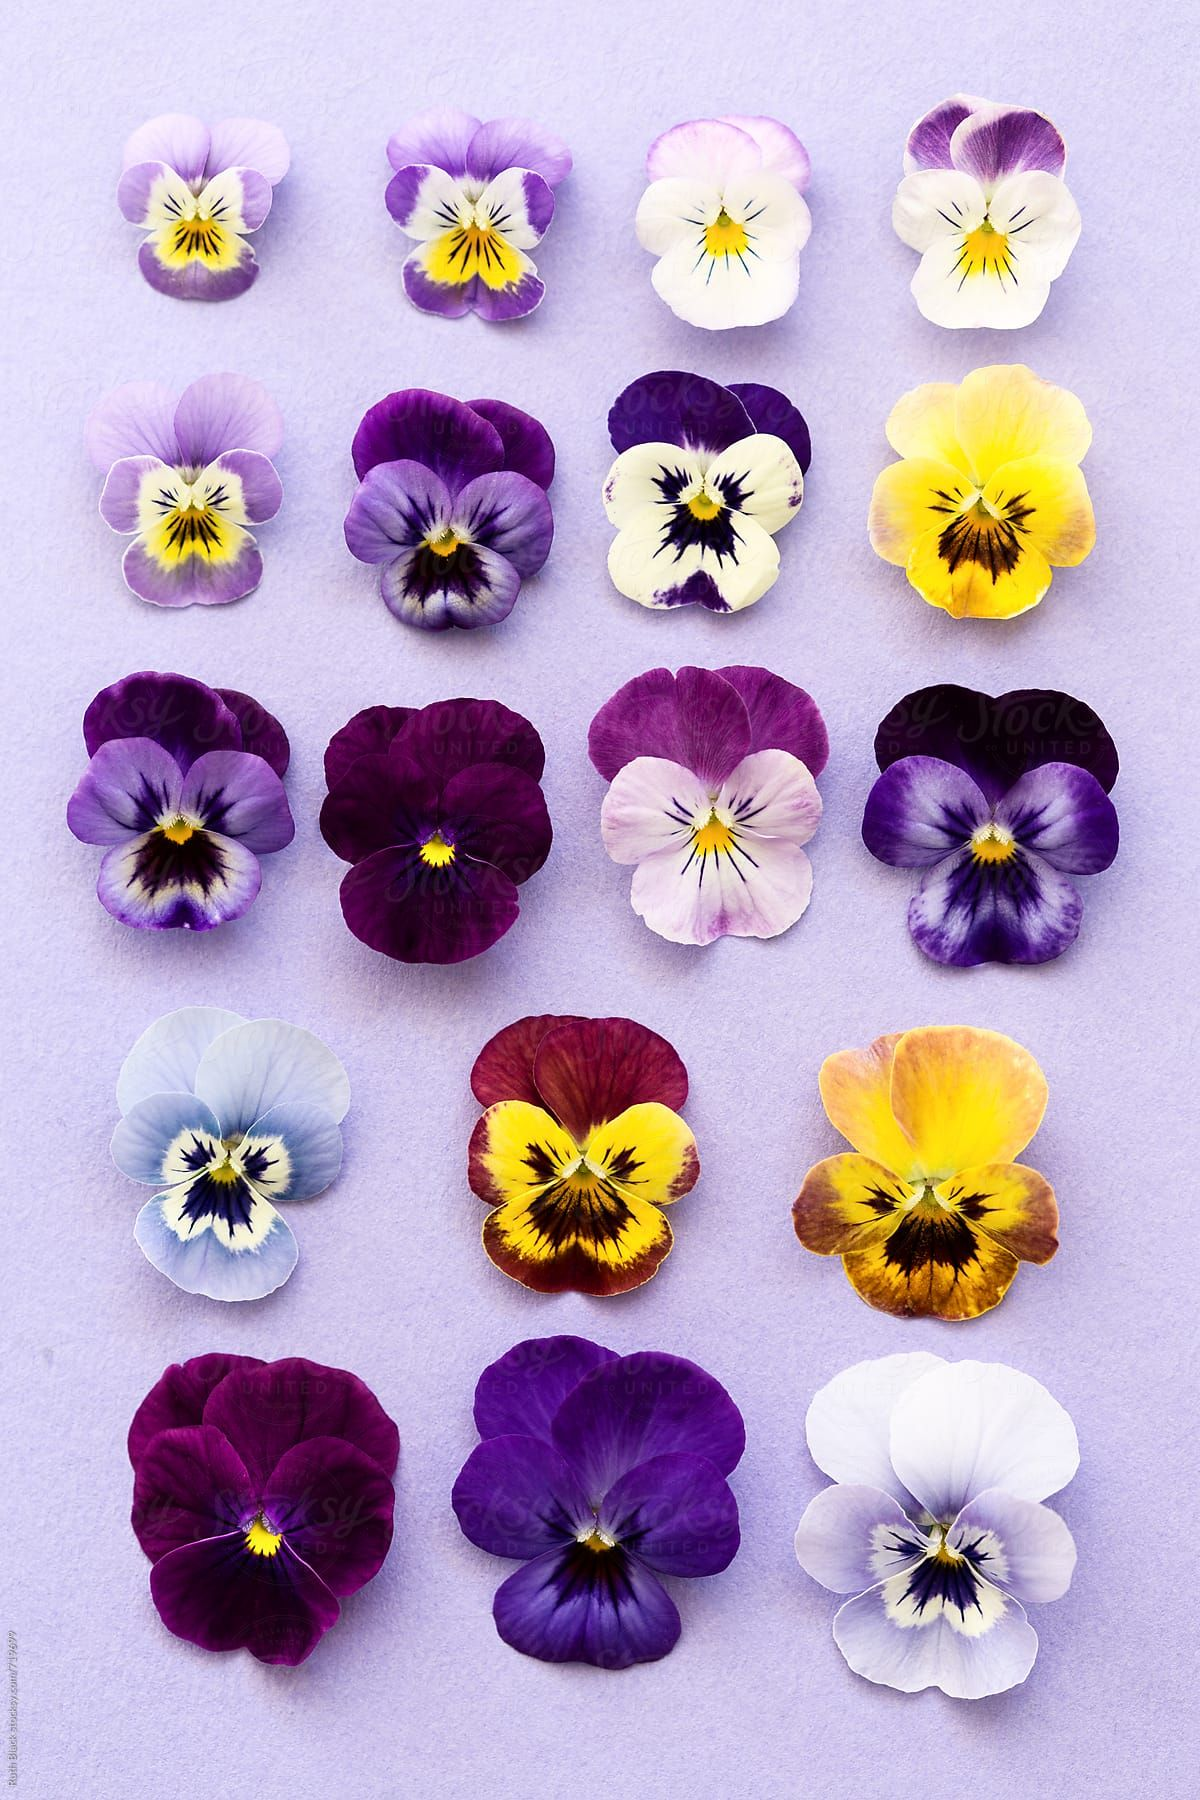 Pansy Flower Heads Ordered By Size By Ruth Black For Stocksy United Pansies Flowers Pansies Flower Painting